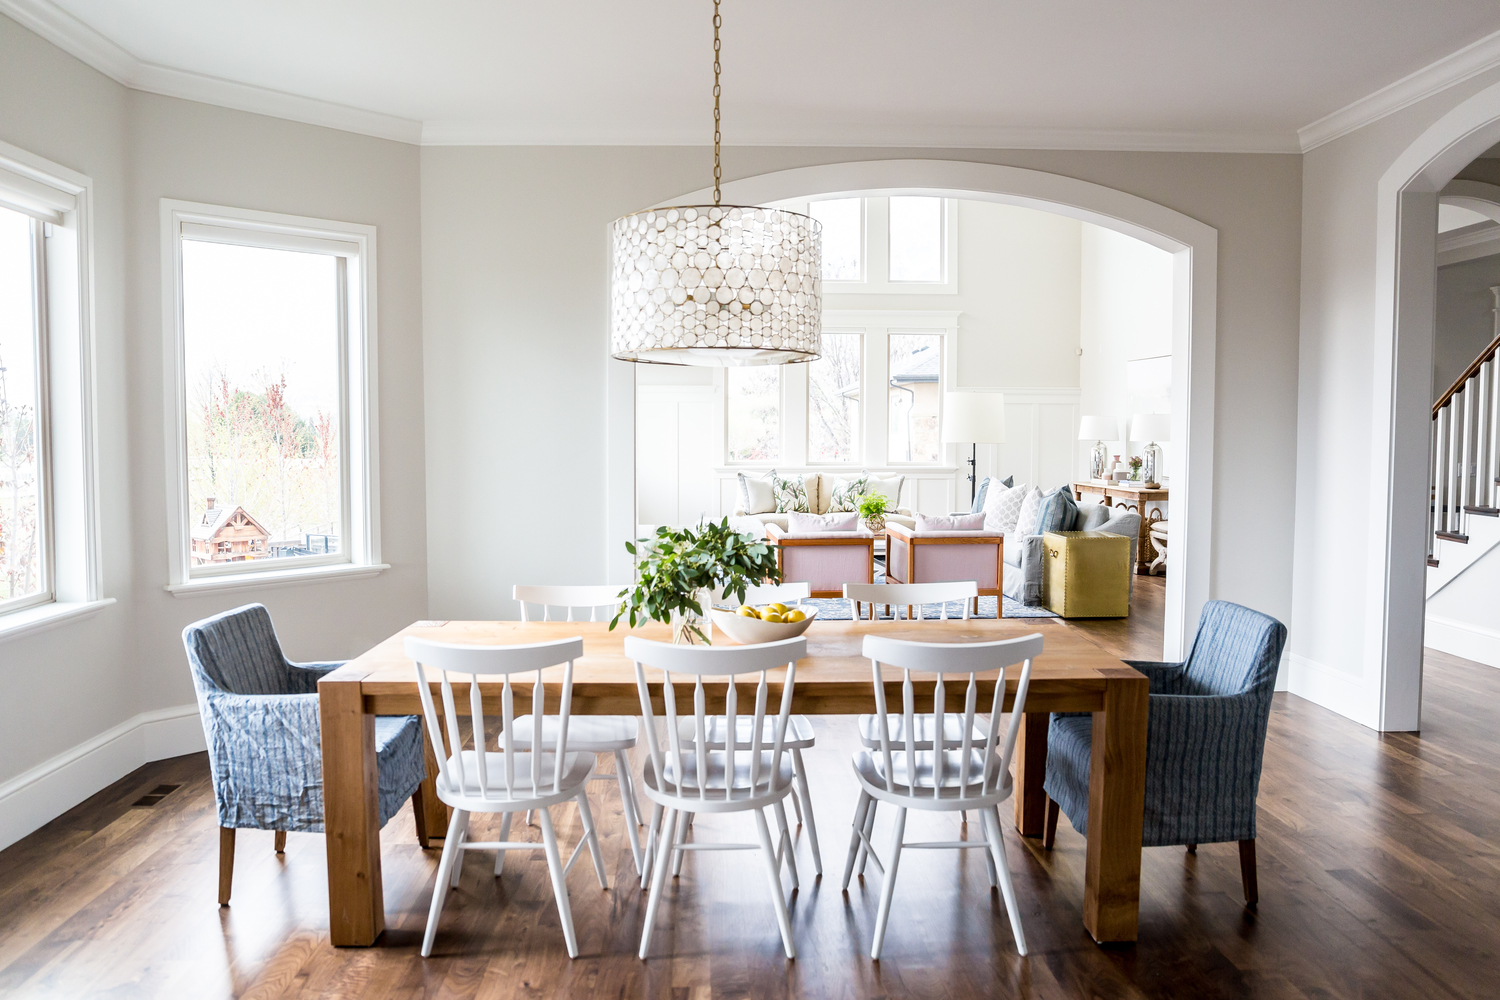 Full view of kitchen table in dining area